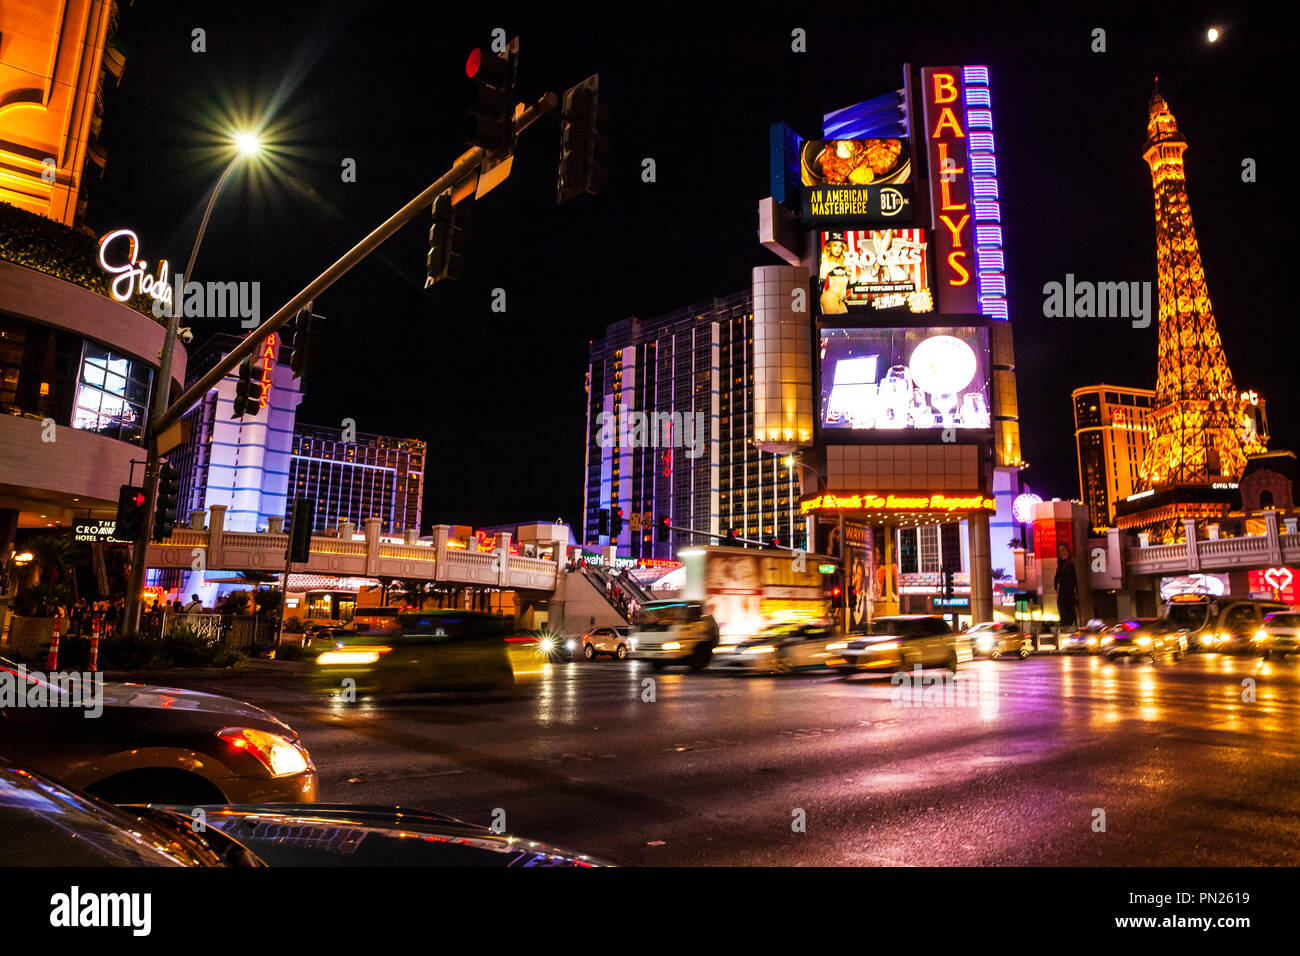 Bally's, shops and Paris in lights on the Las Vegas Strip Nevada USA Stock Photo